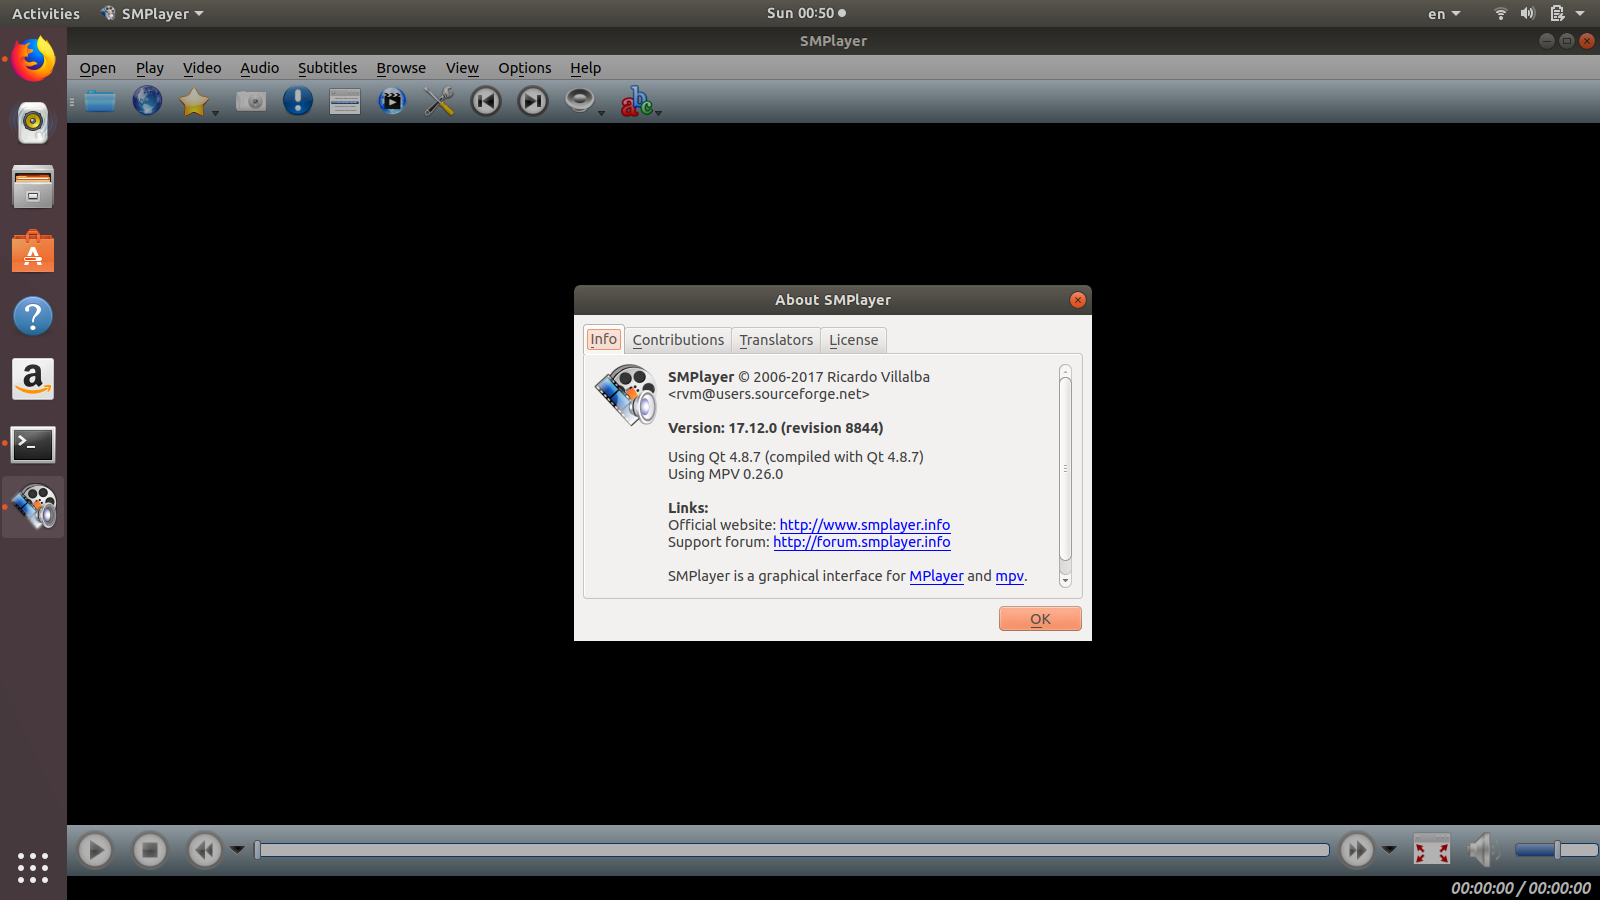 How to install program on ubuntu december 2017 smplayer is a graphical user interface gui for the award winning mplayer which is capable of playing almost all known video and audio formats ccuart Image collections